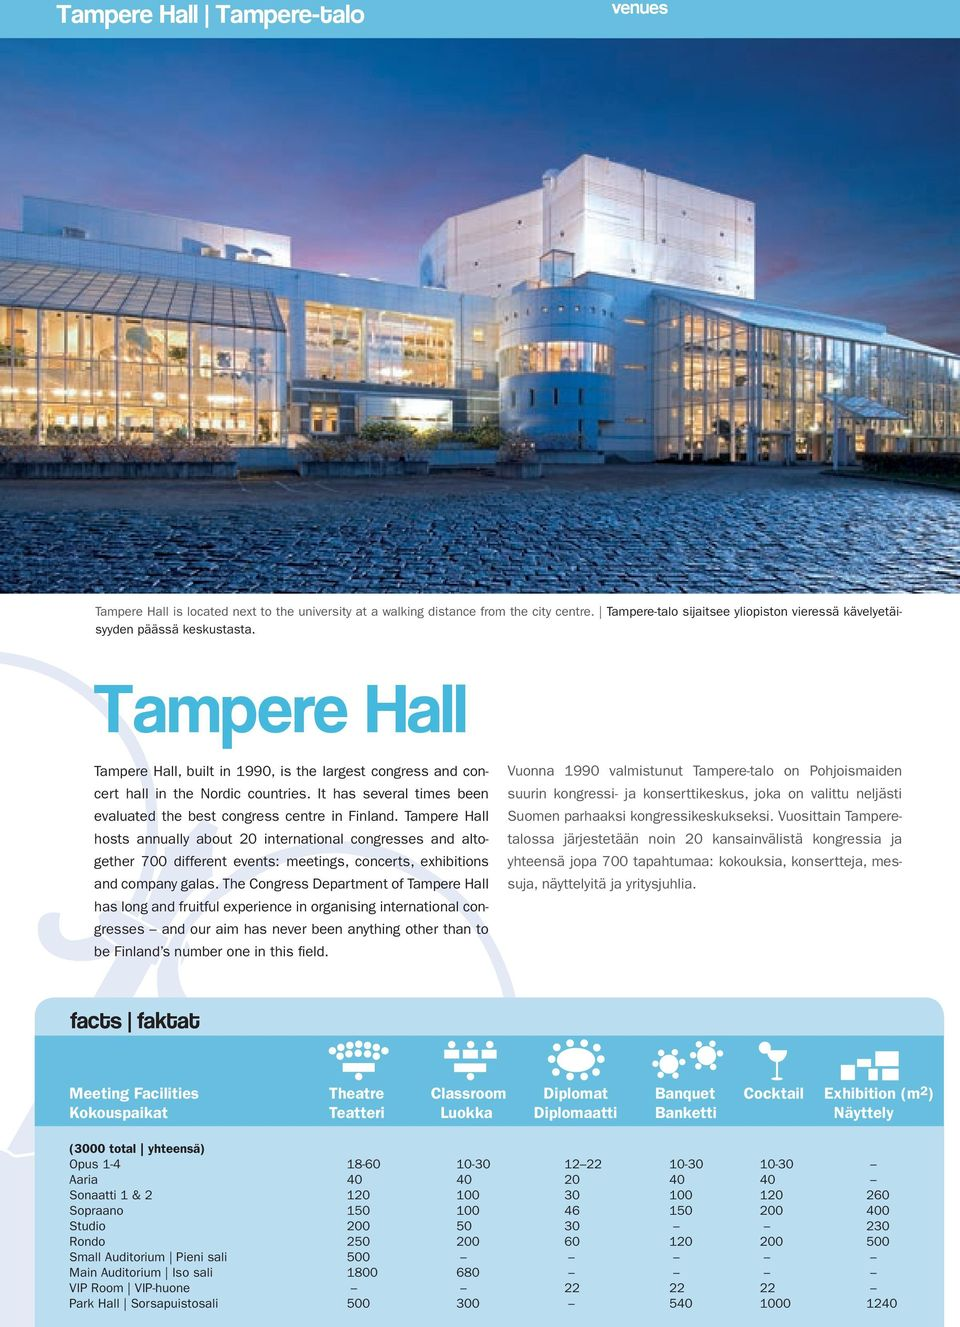 It has several times been evaluated the best congress centre in Finland.